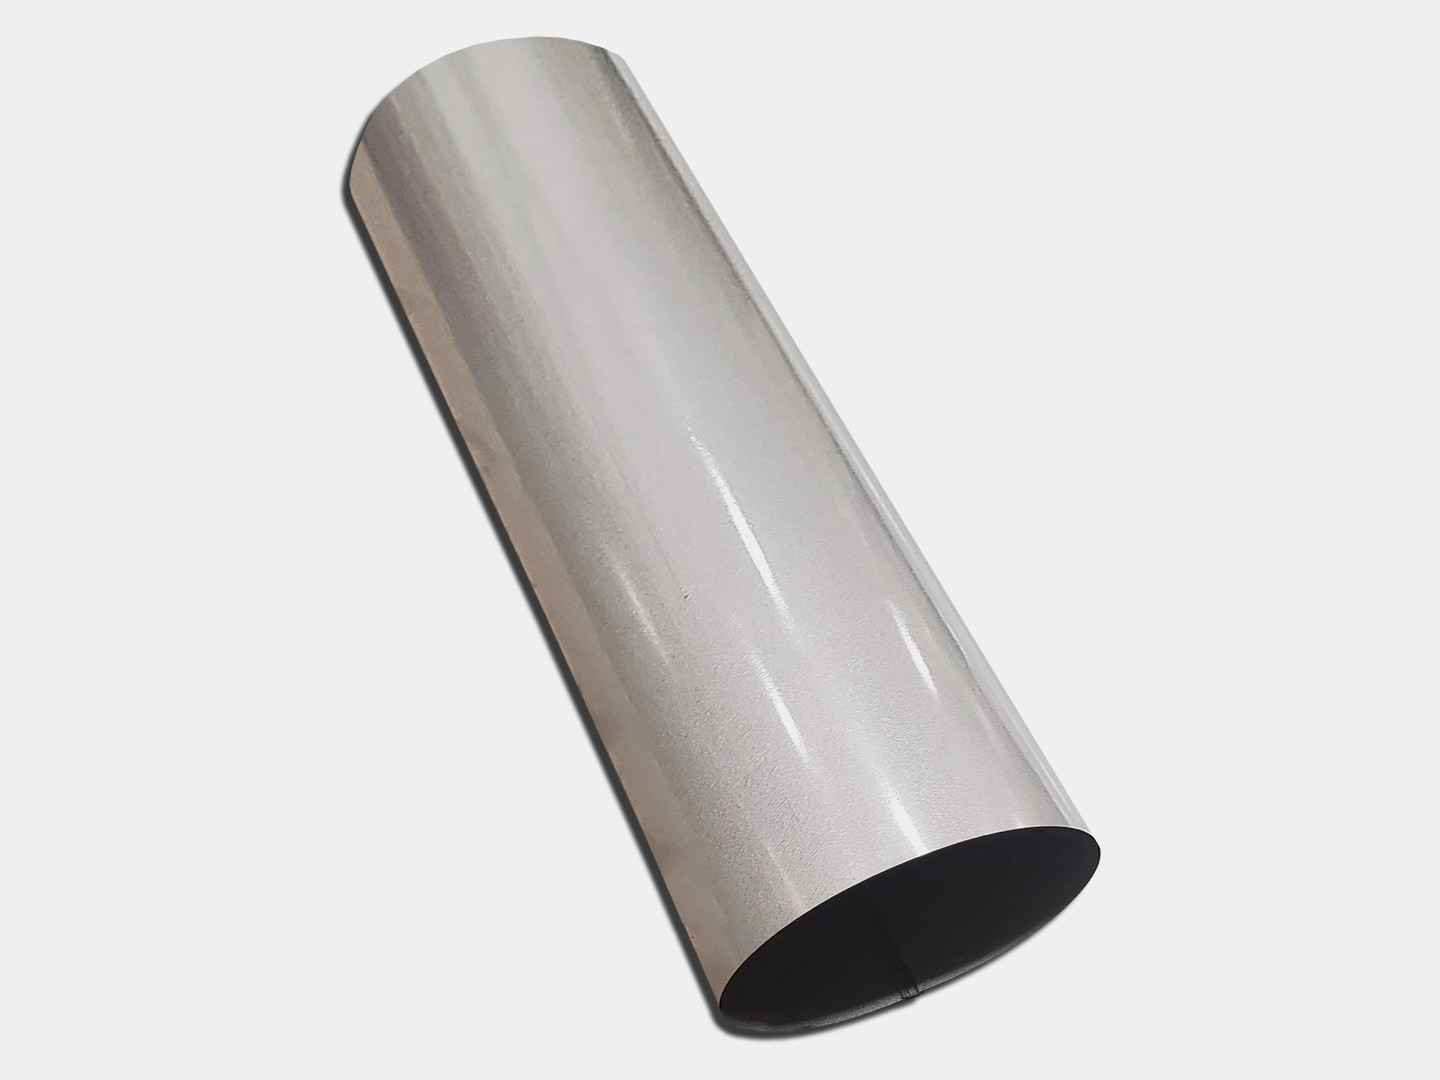 Plain Round Smooth Galvalume Plus Downspout